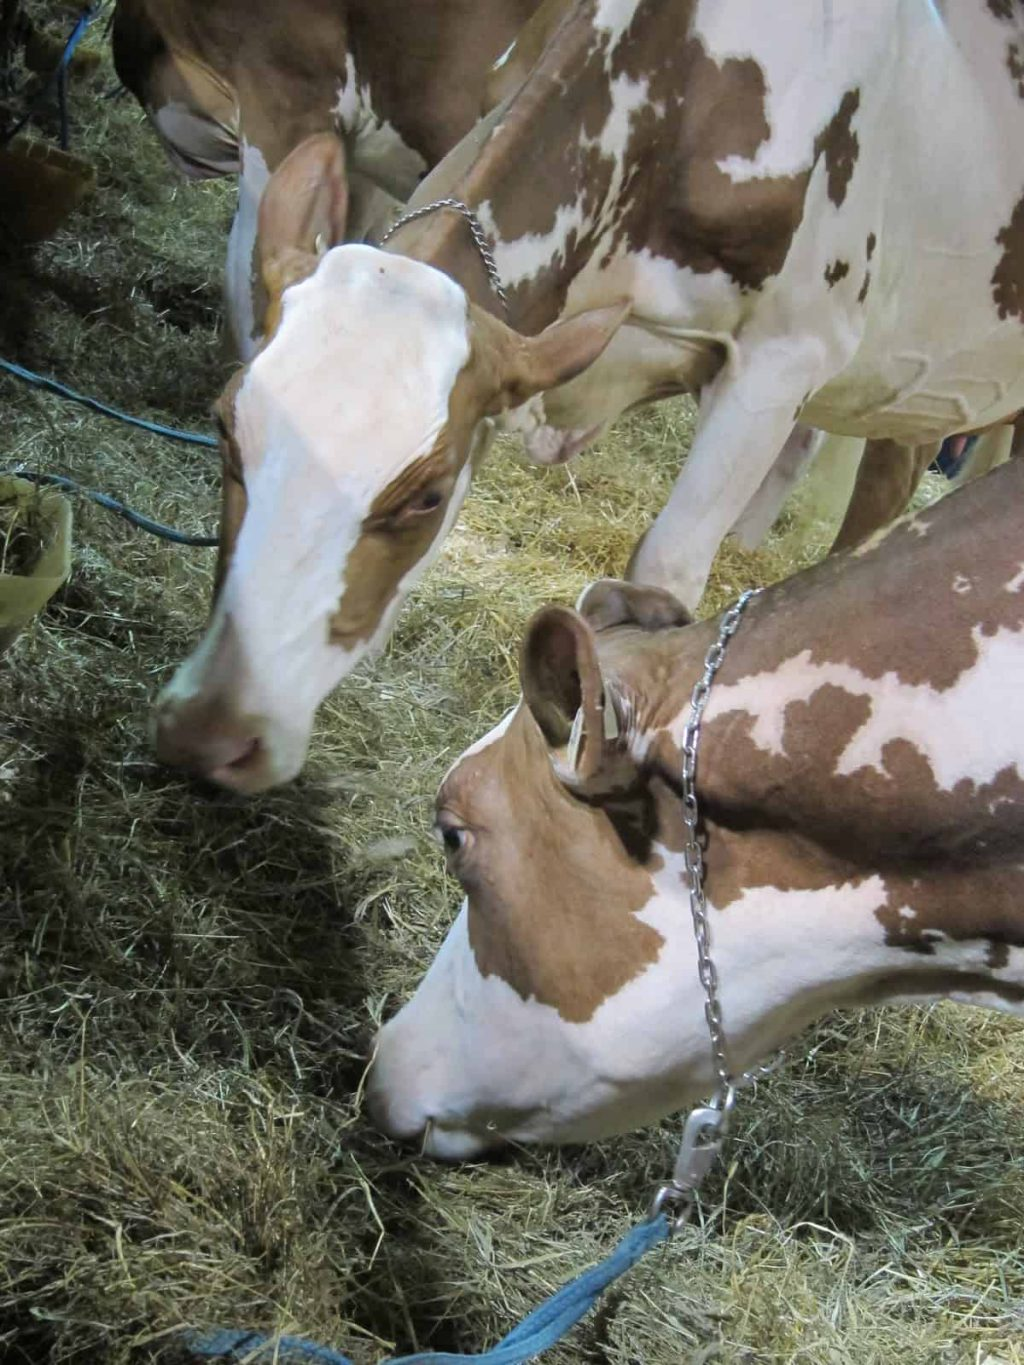 close up photo of cows at The Royal Agricultural Winter fair.